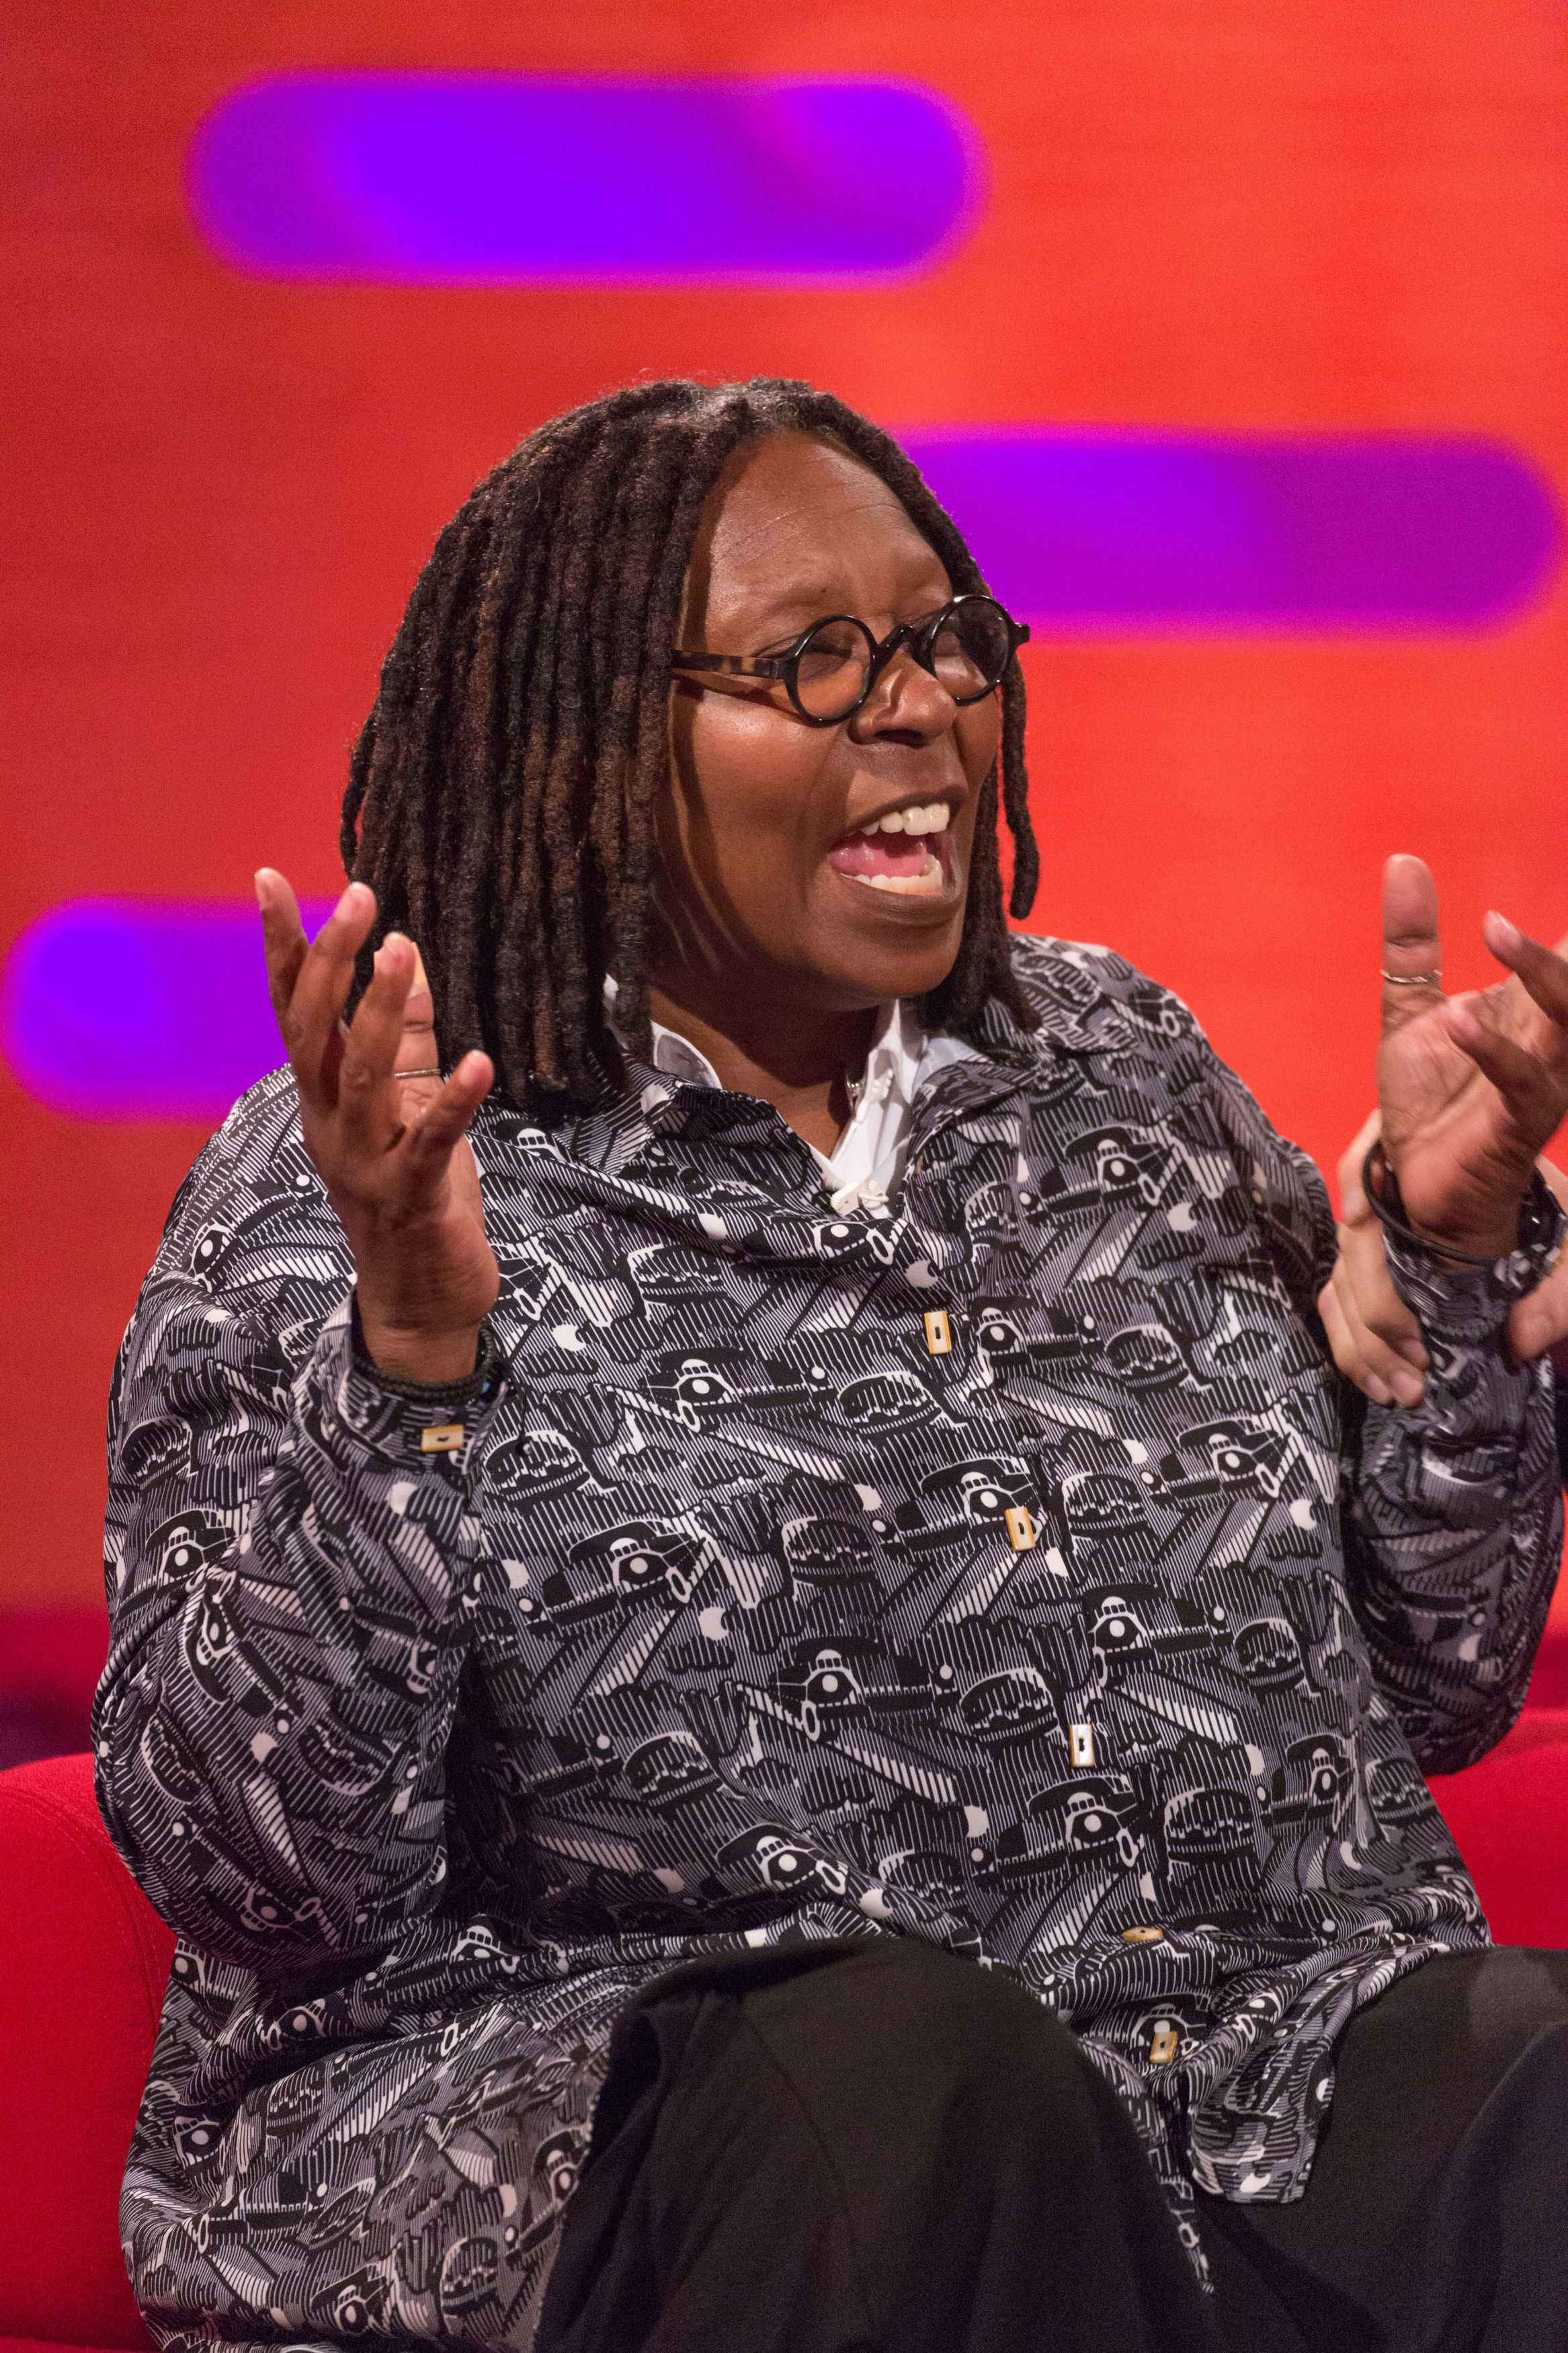 Whoopi Goldberg during the filming of the Graham Norton Show at BBC Studioworks 6 Television Centre, Wood Lane, London, to be aired on BBC One on Friday evening.